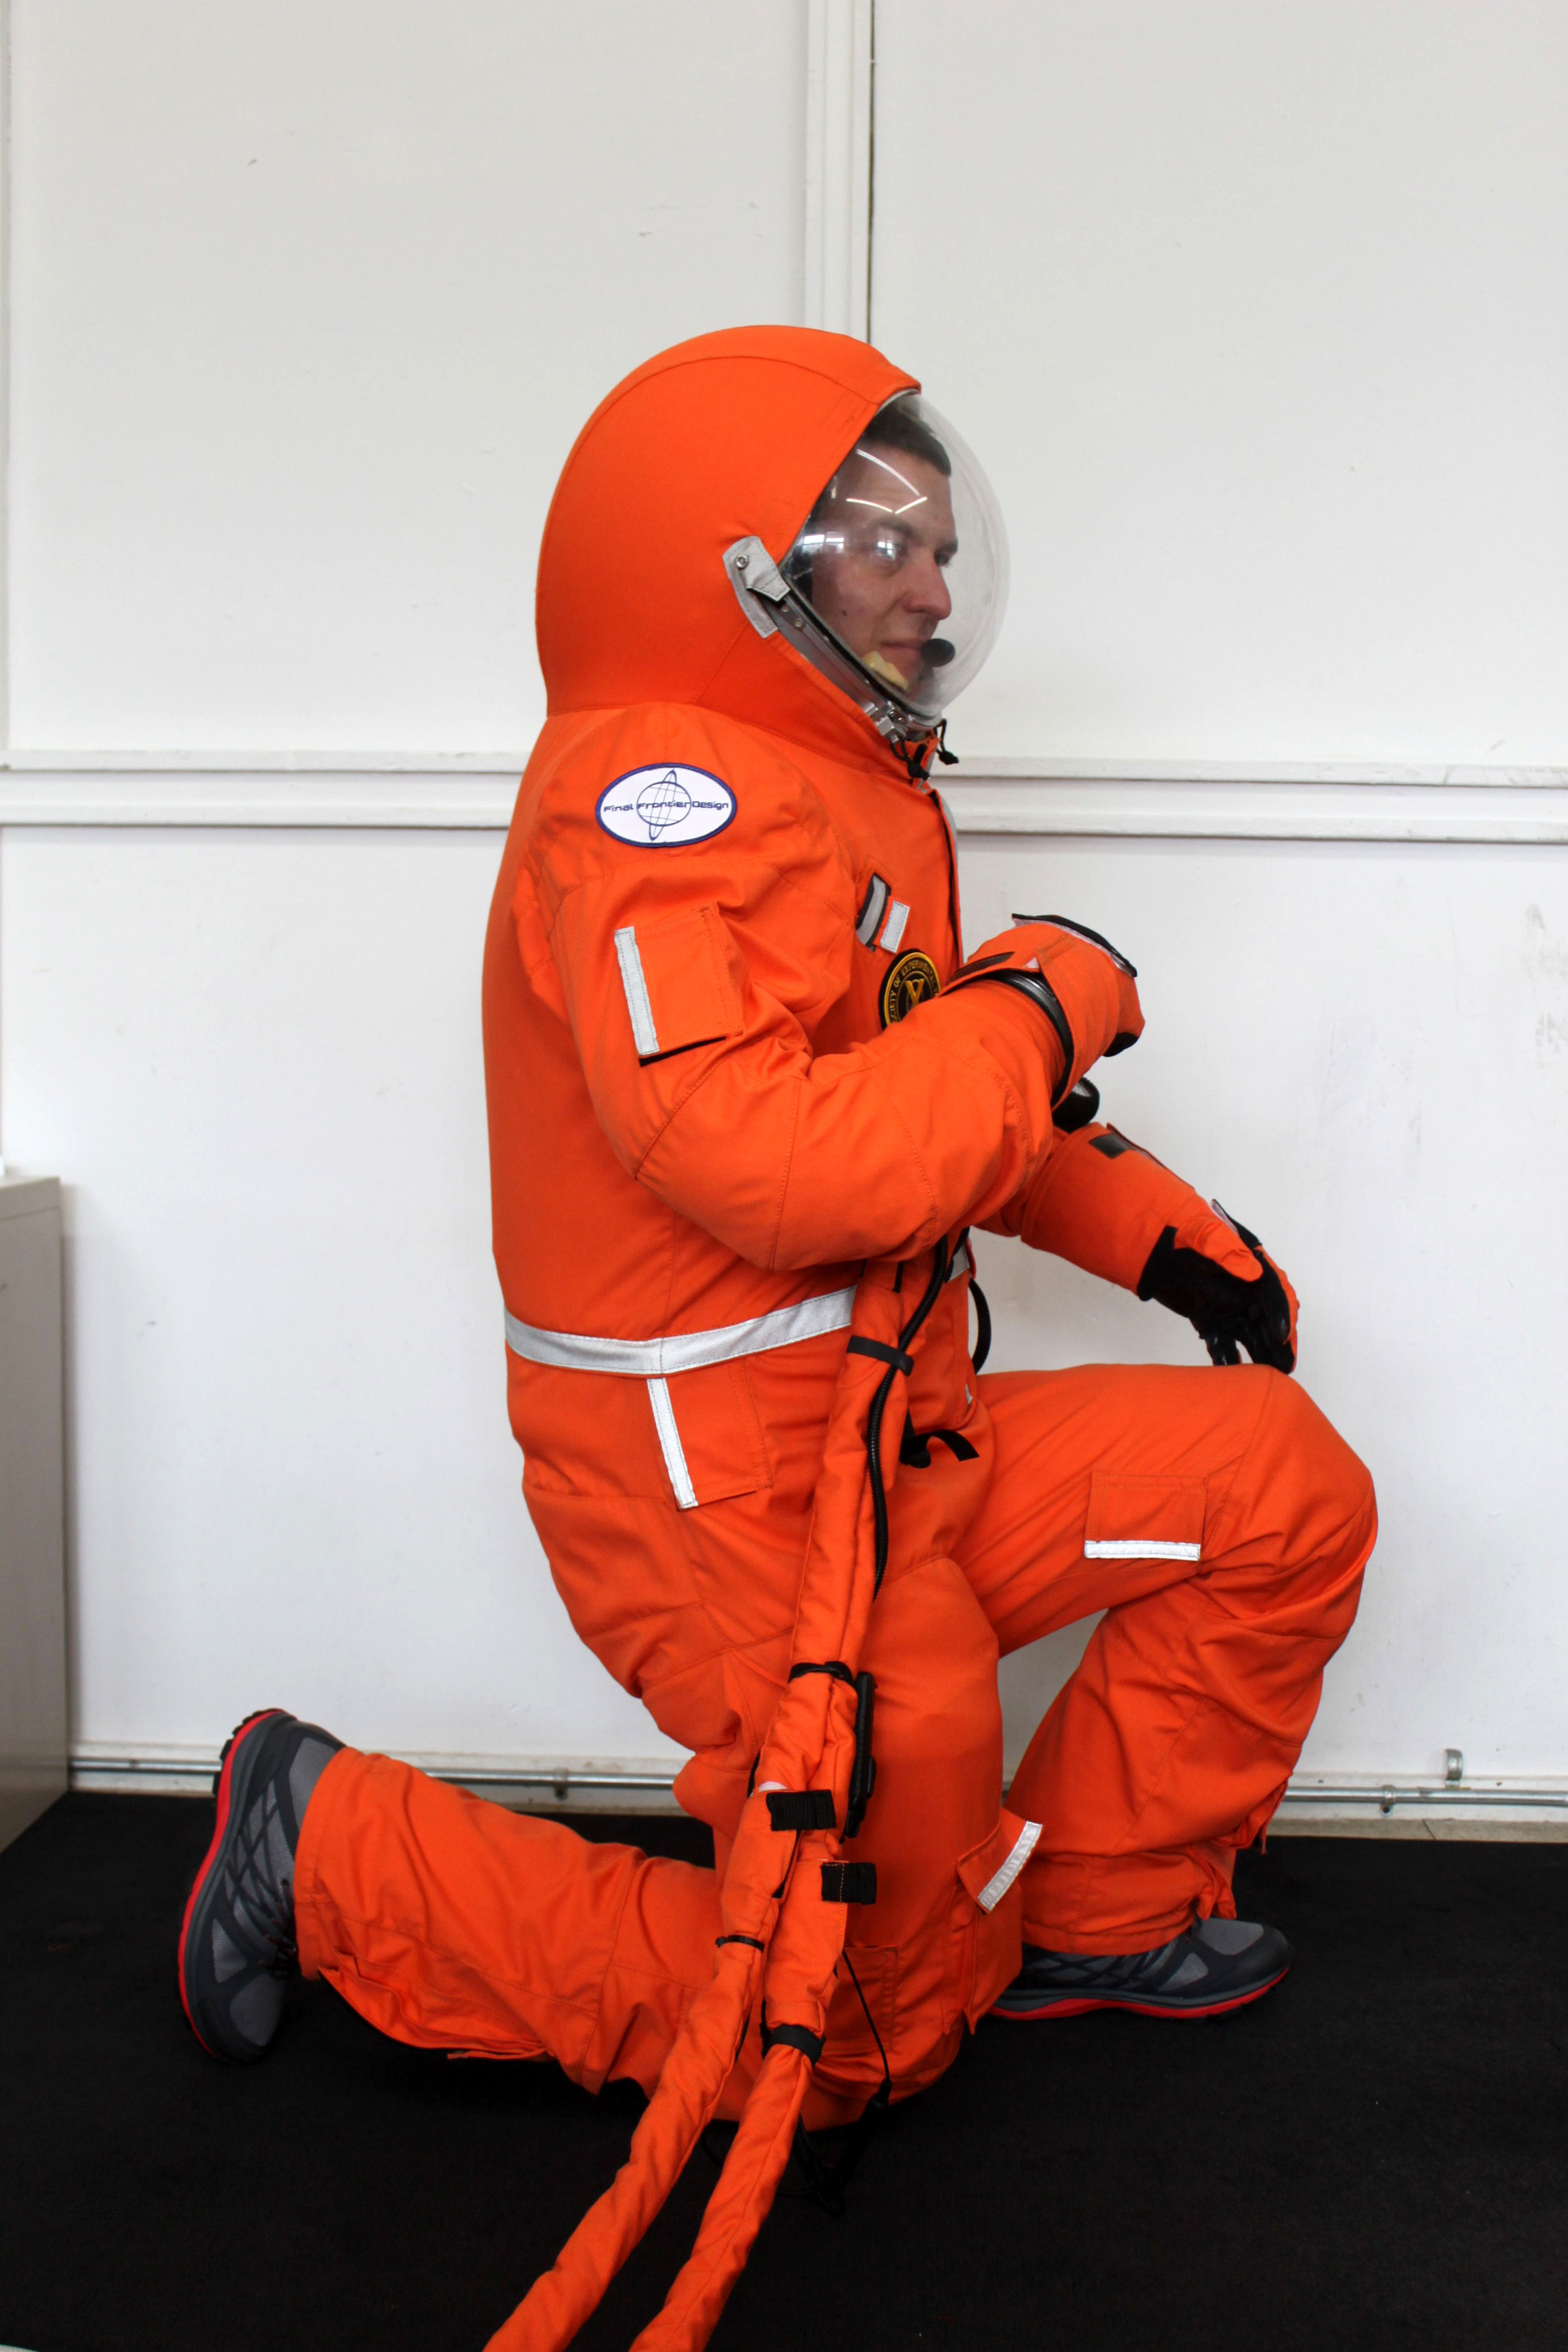 Gen 2 outergarment for the 3G Mark III suit